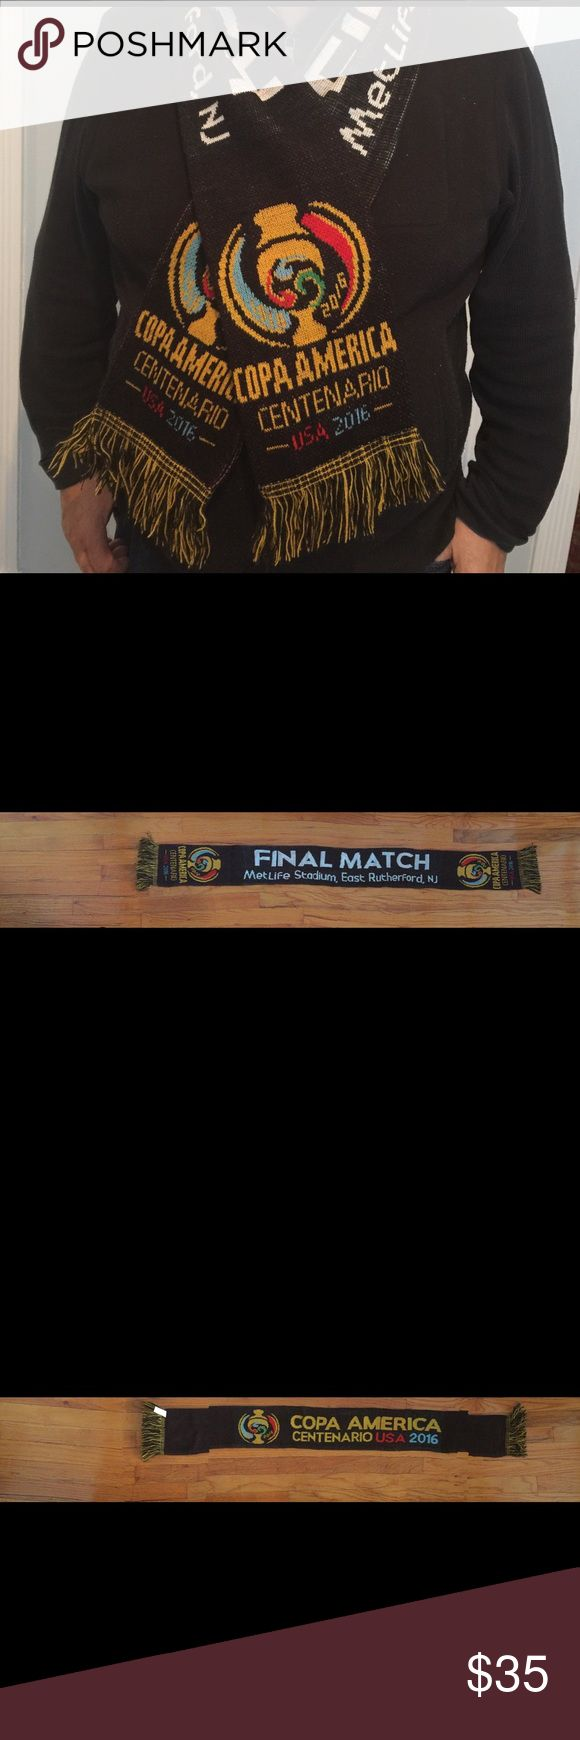 Copa América USA 2016 Final Match scarf Final match scarf giveaway. Argentina vs Chile Accessories Scarves